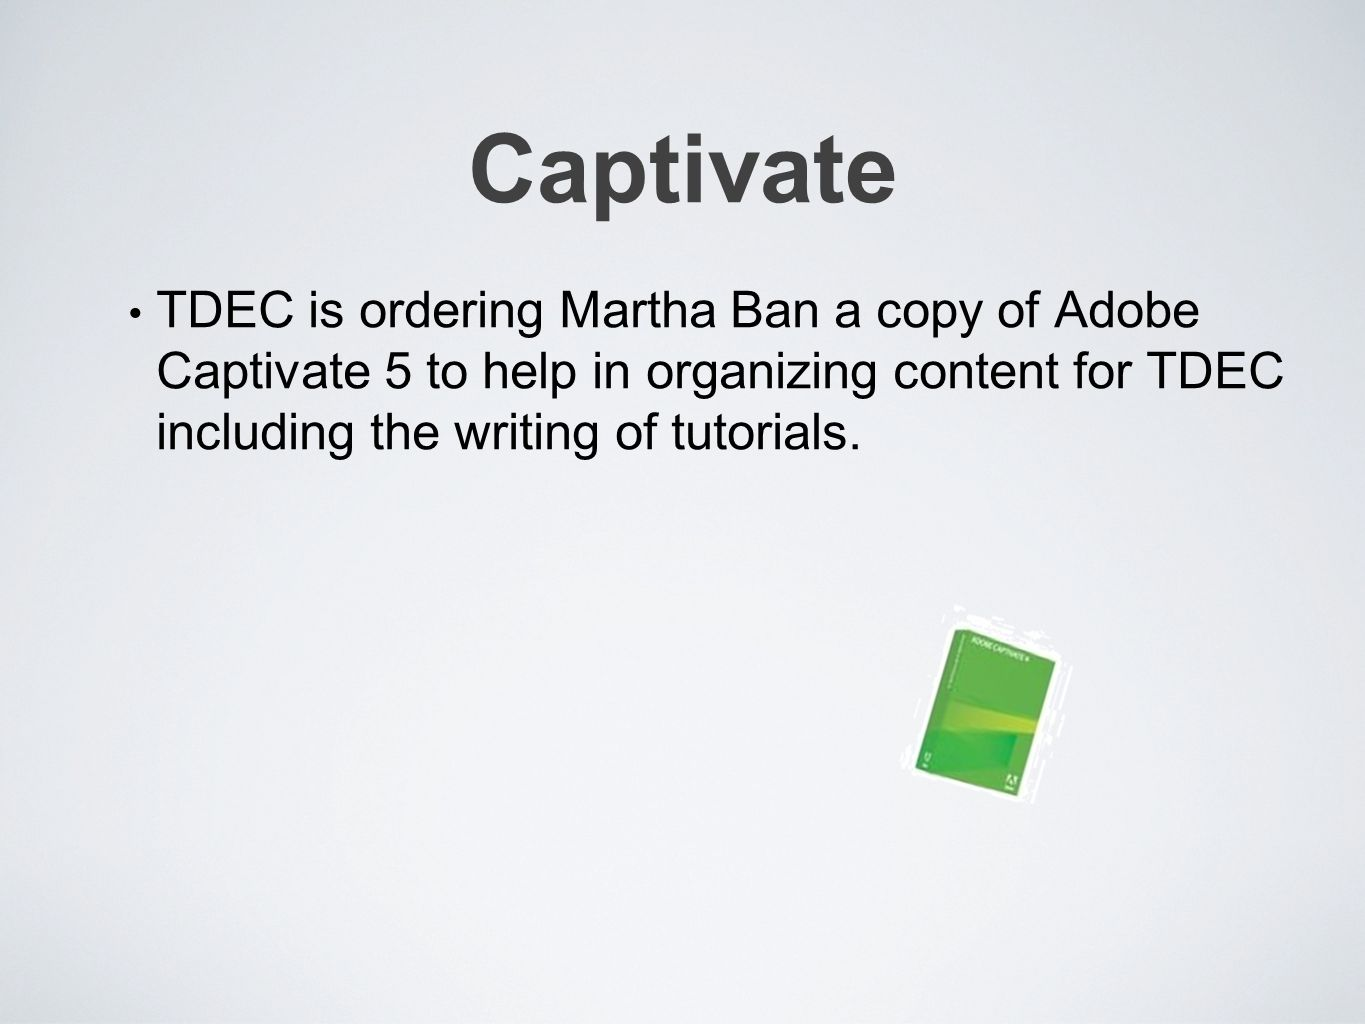 Captivate TDEC is ordering Martha Ban a copy of Adobe Captivate 5 to help in organizing content for TDEC including the writing of tutorials.